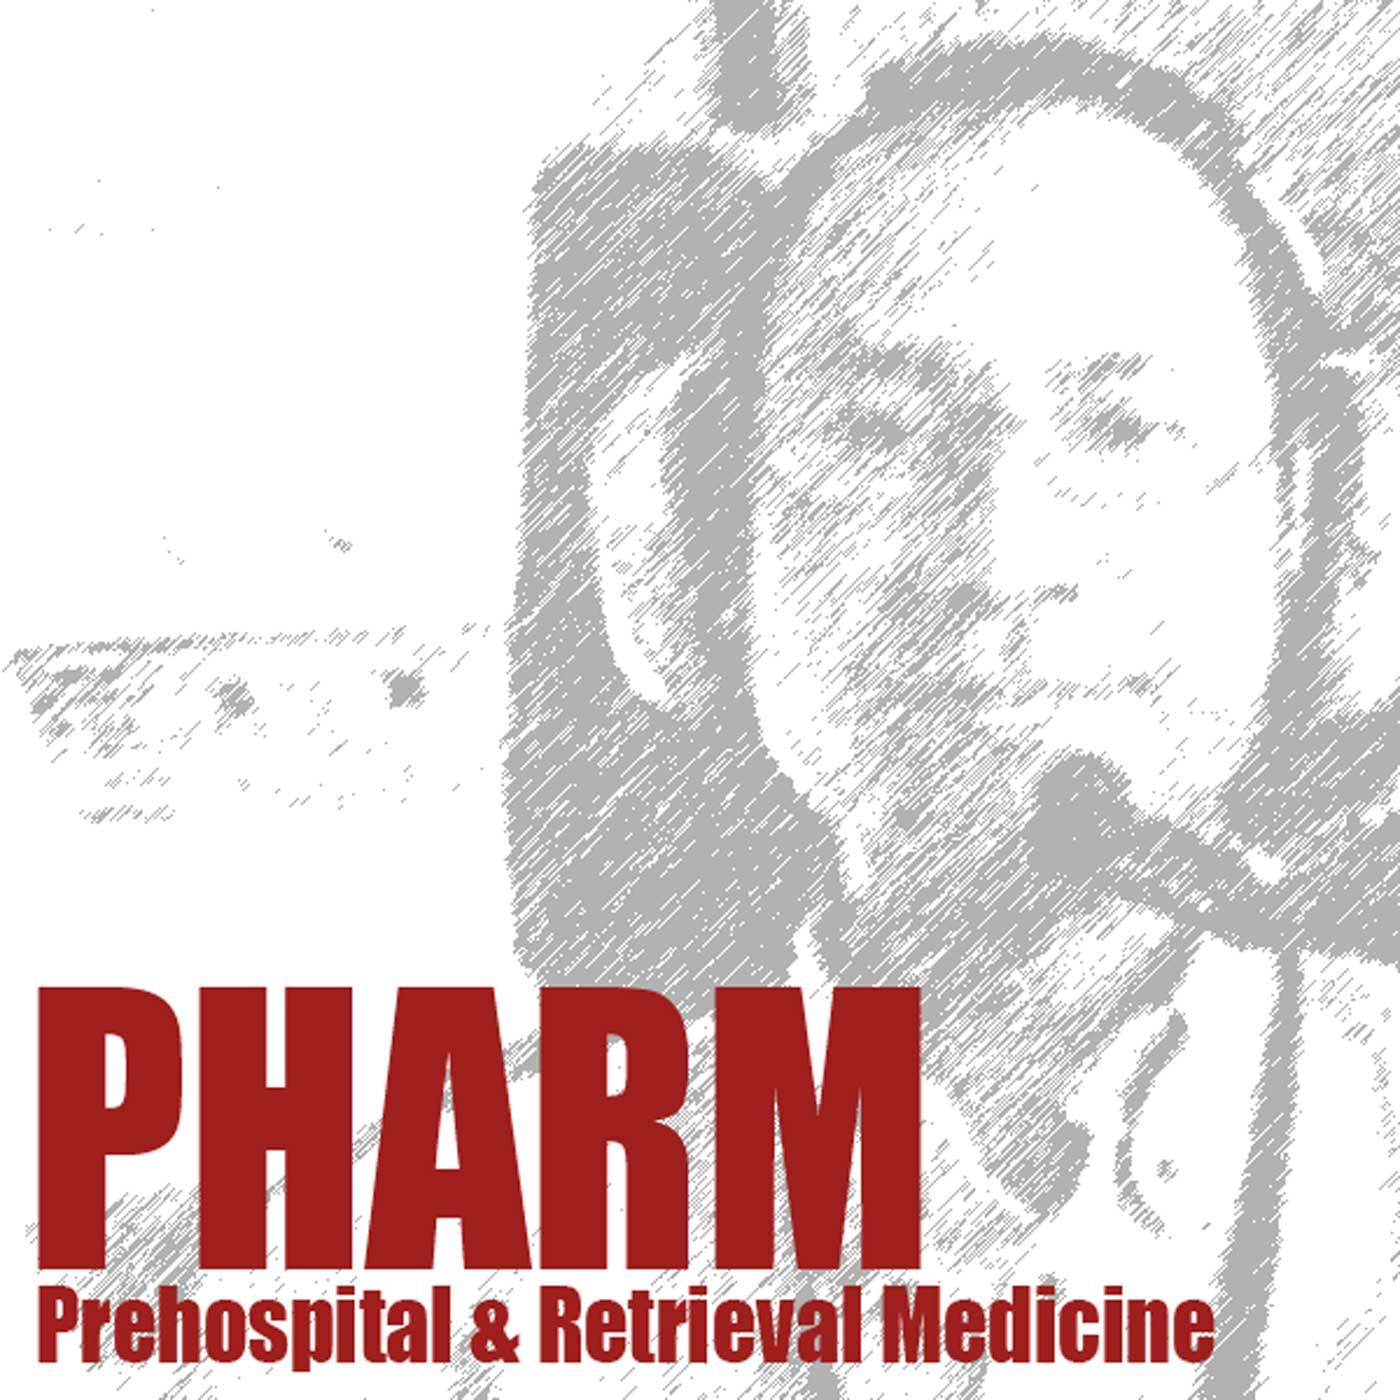 Prehospital and Retrieval Medicine Podcast